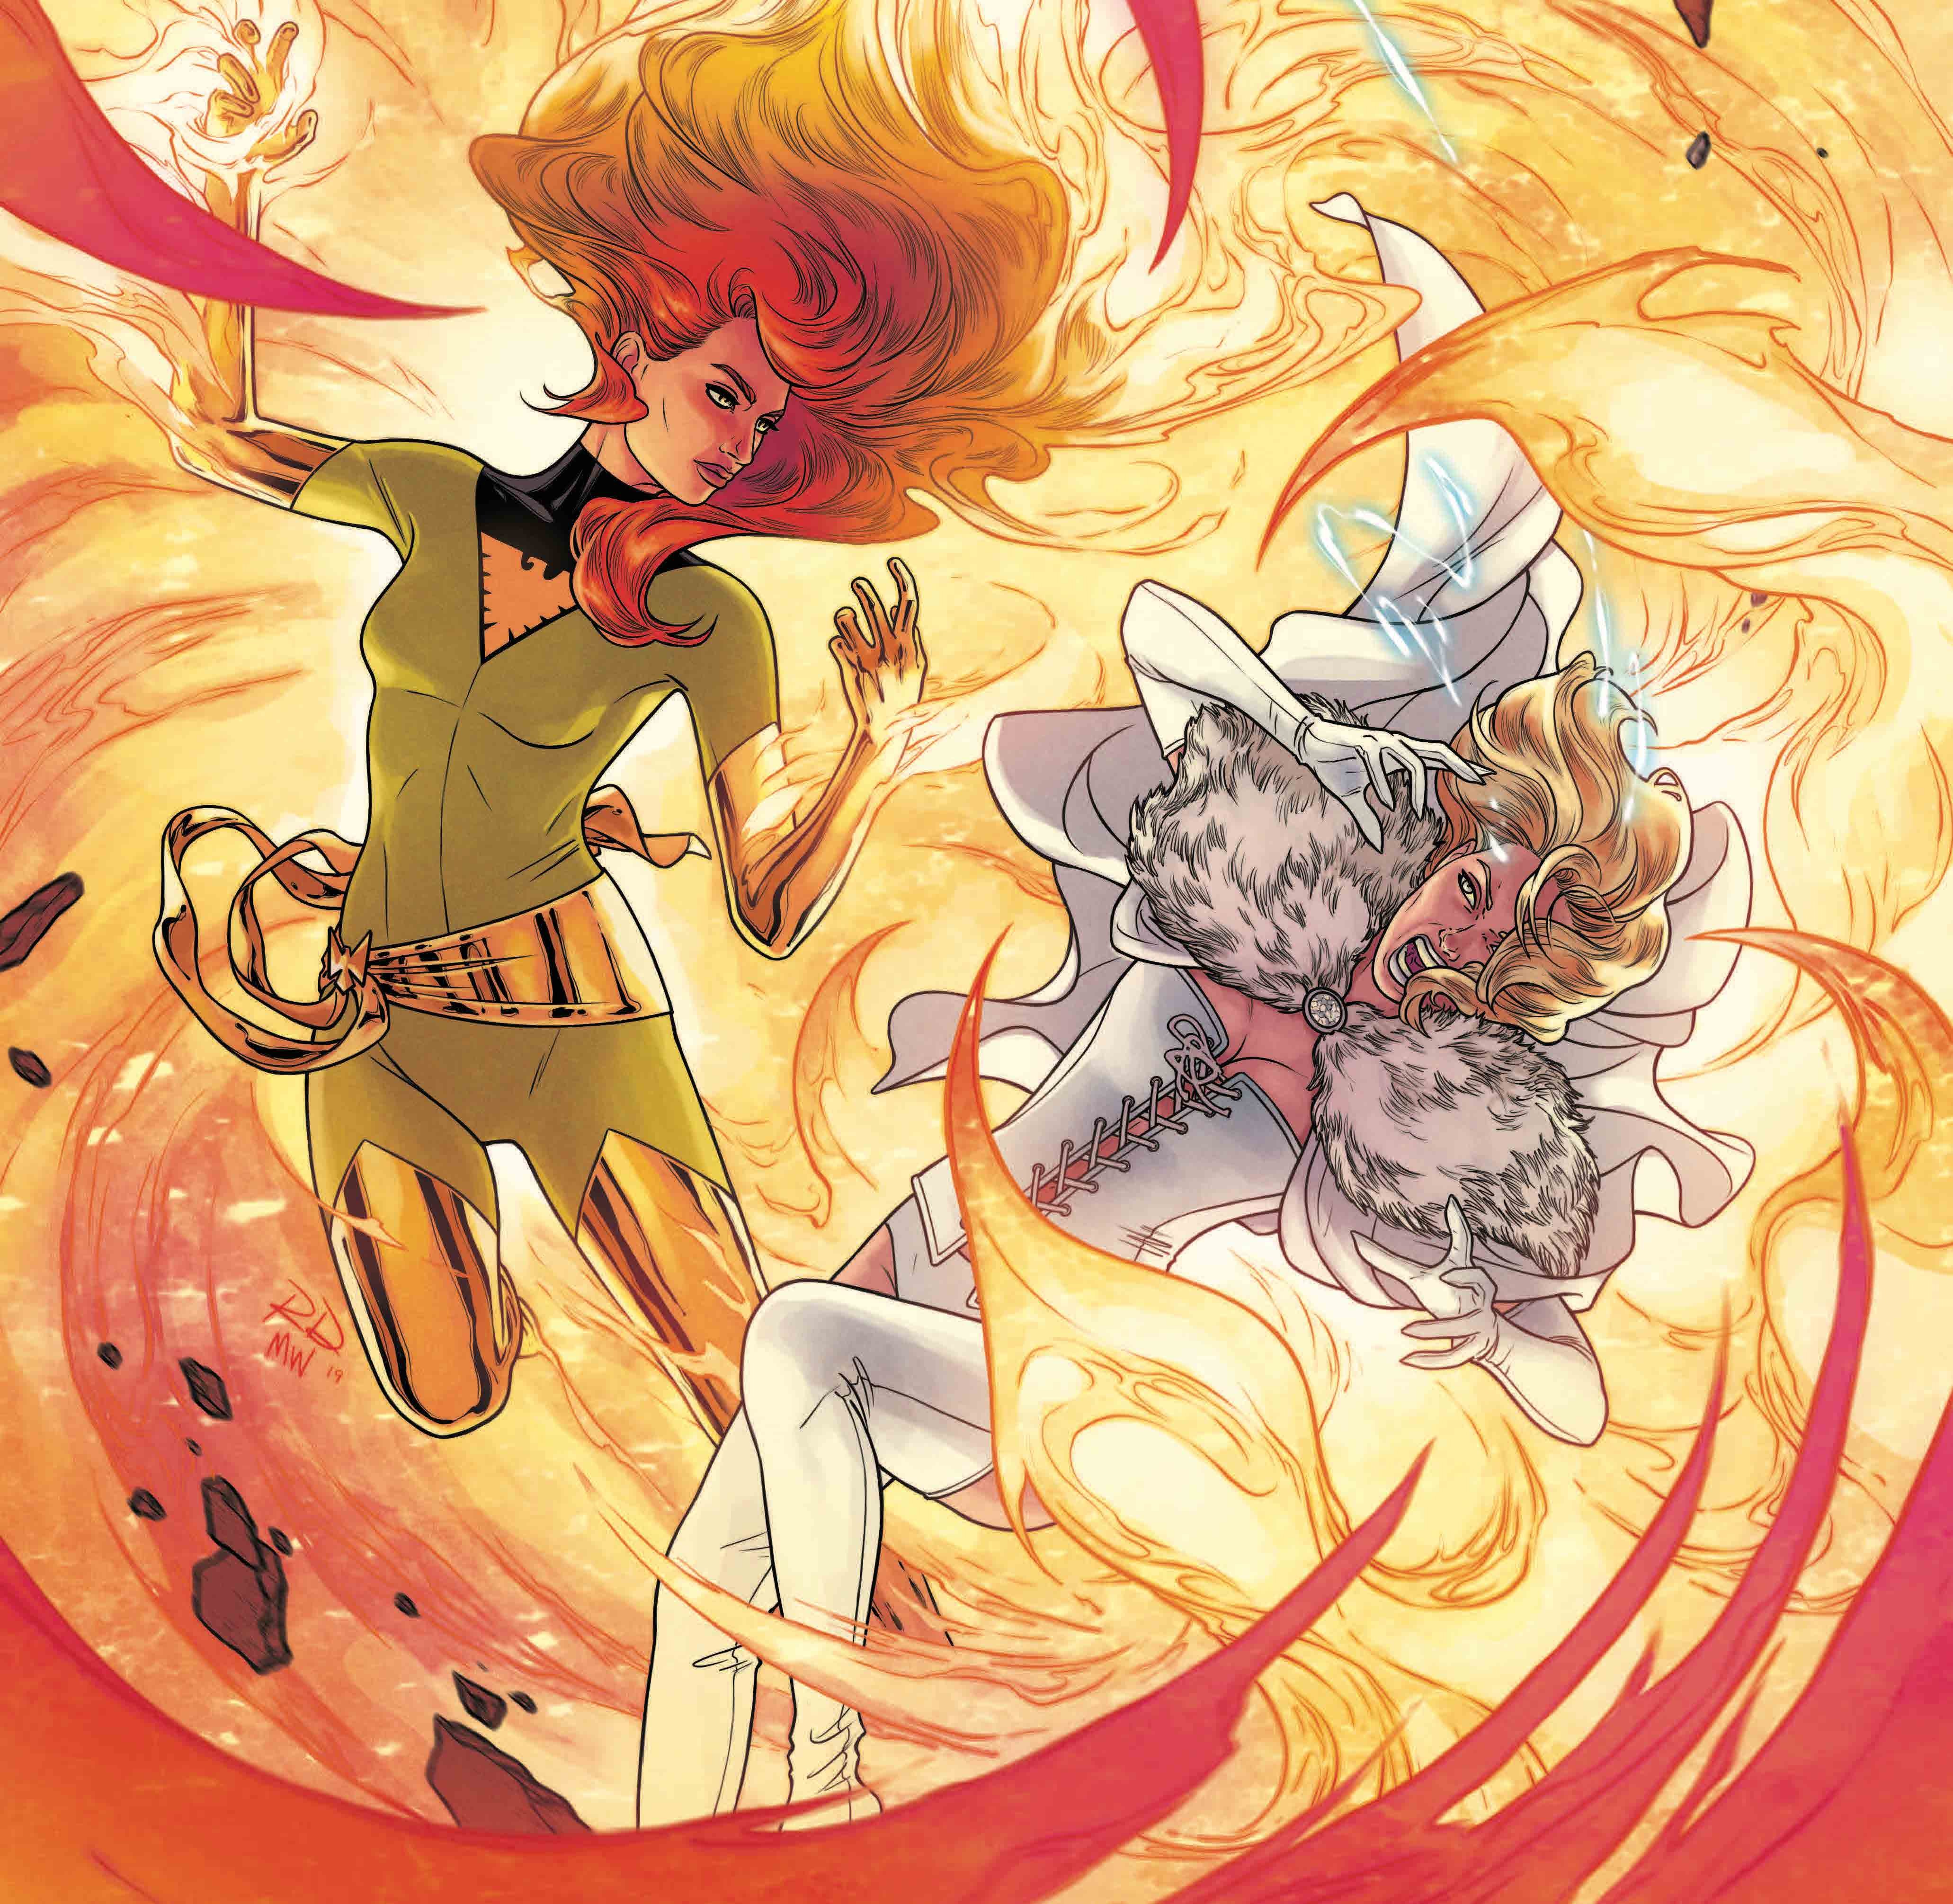 X-Men fans can celebrate Dark Phoenix's 40th anniversary with new Marvel variant covers